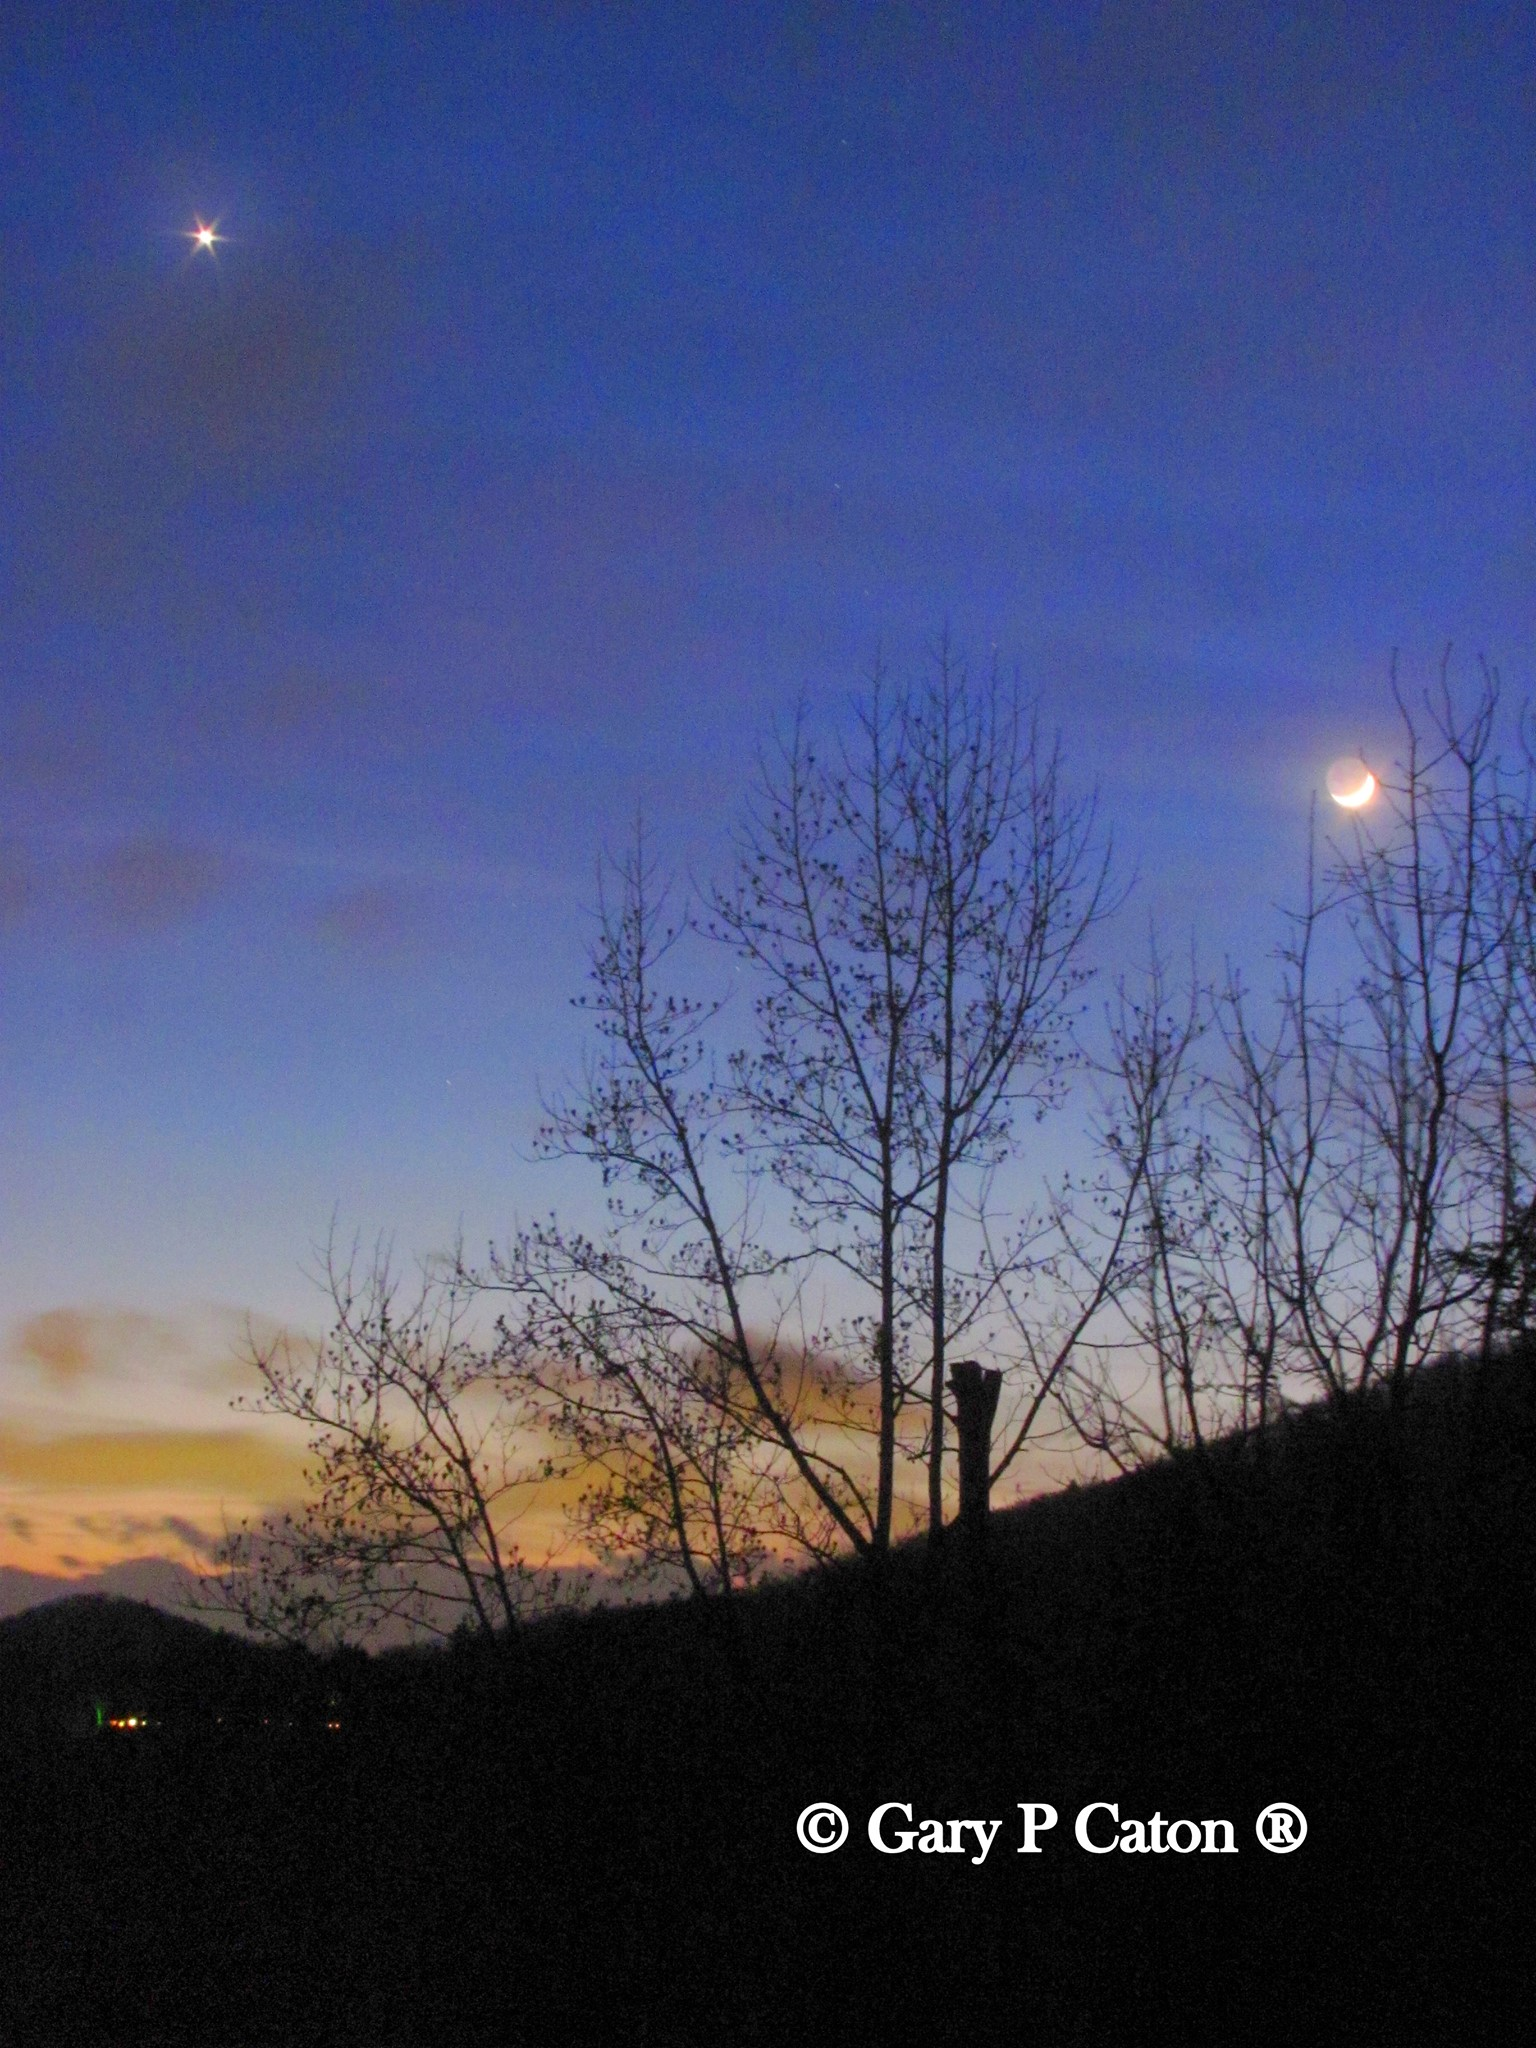 View larger. | People around the world saw the moon and Venus last night. Gary P. Caton captured them from Asheville, North Carolina. Thank you, Gary! View more photos by Gary P. Caton here.